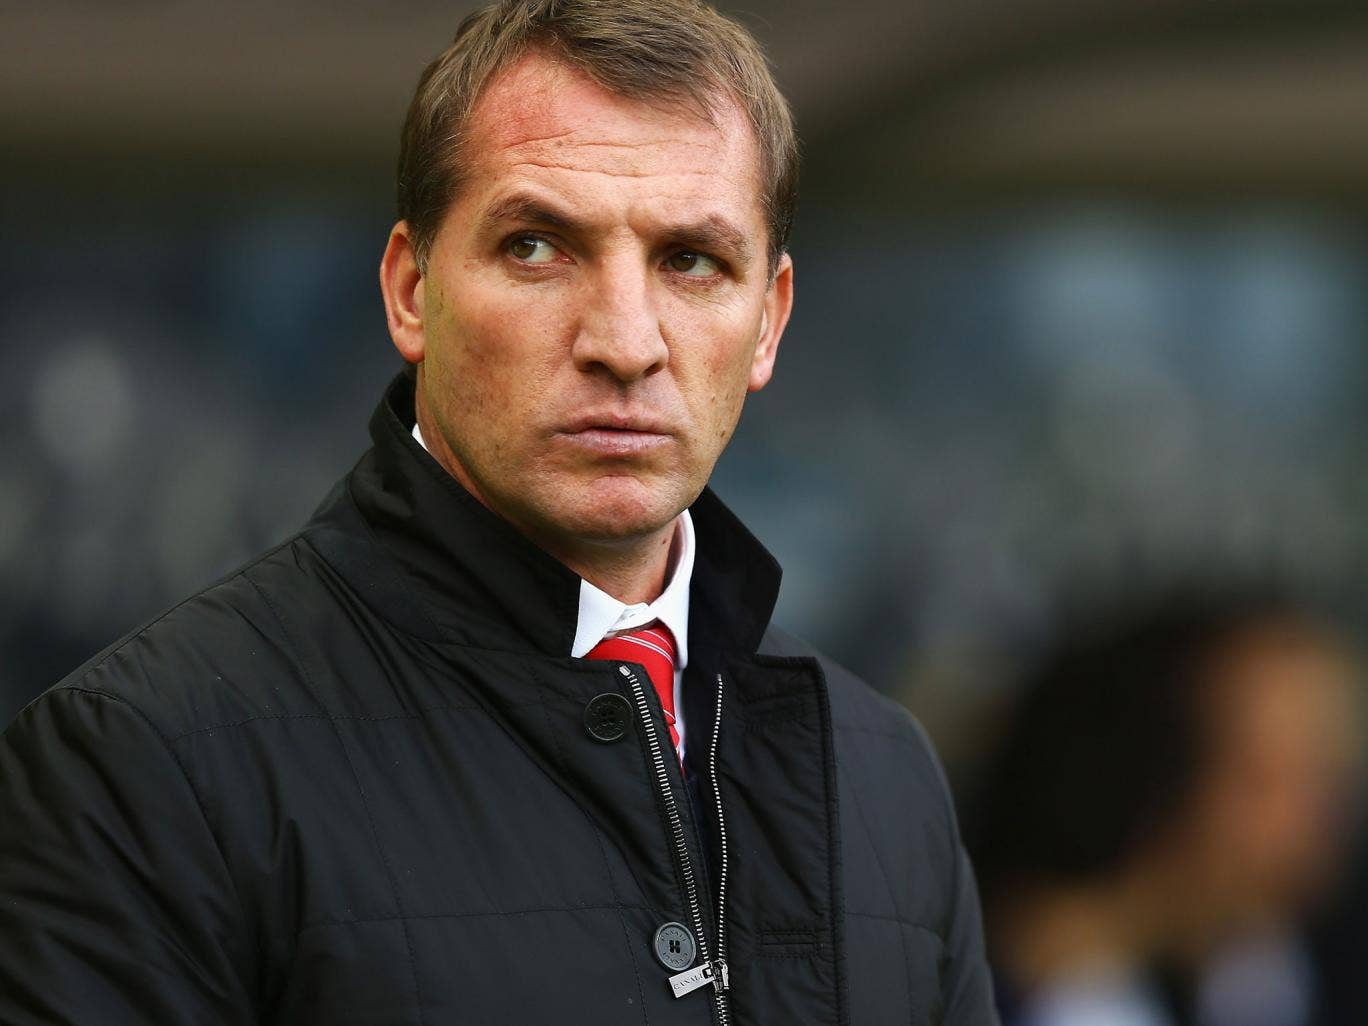 Brendan Rodgers will meet mentor Jose Mourinho for the first time on Sunday